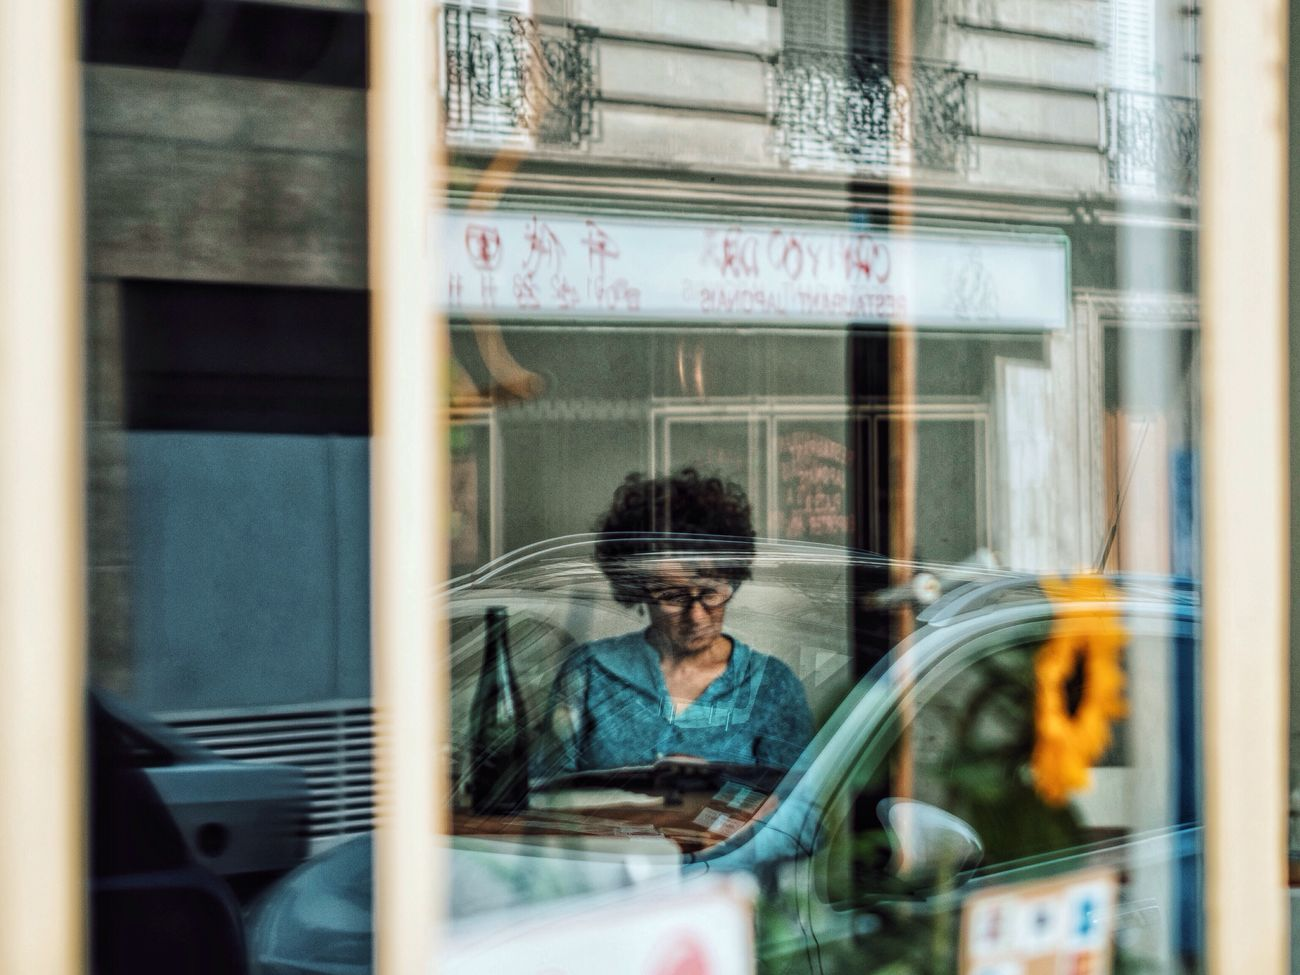 Reflection Windows Of Thoughts Capture The Moment People Street Photography EyeEm Best Shots Eyeemphoto Fine Art Photography Moments Up Close Street Photography Portrait Abstract Window